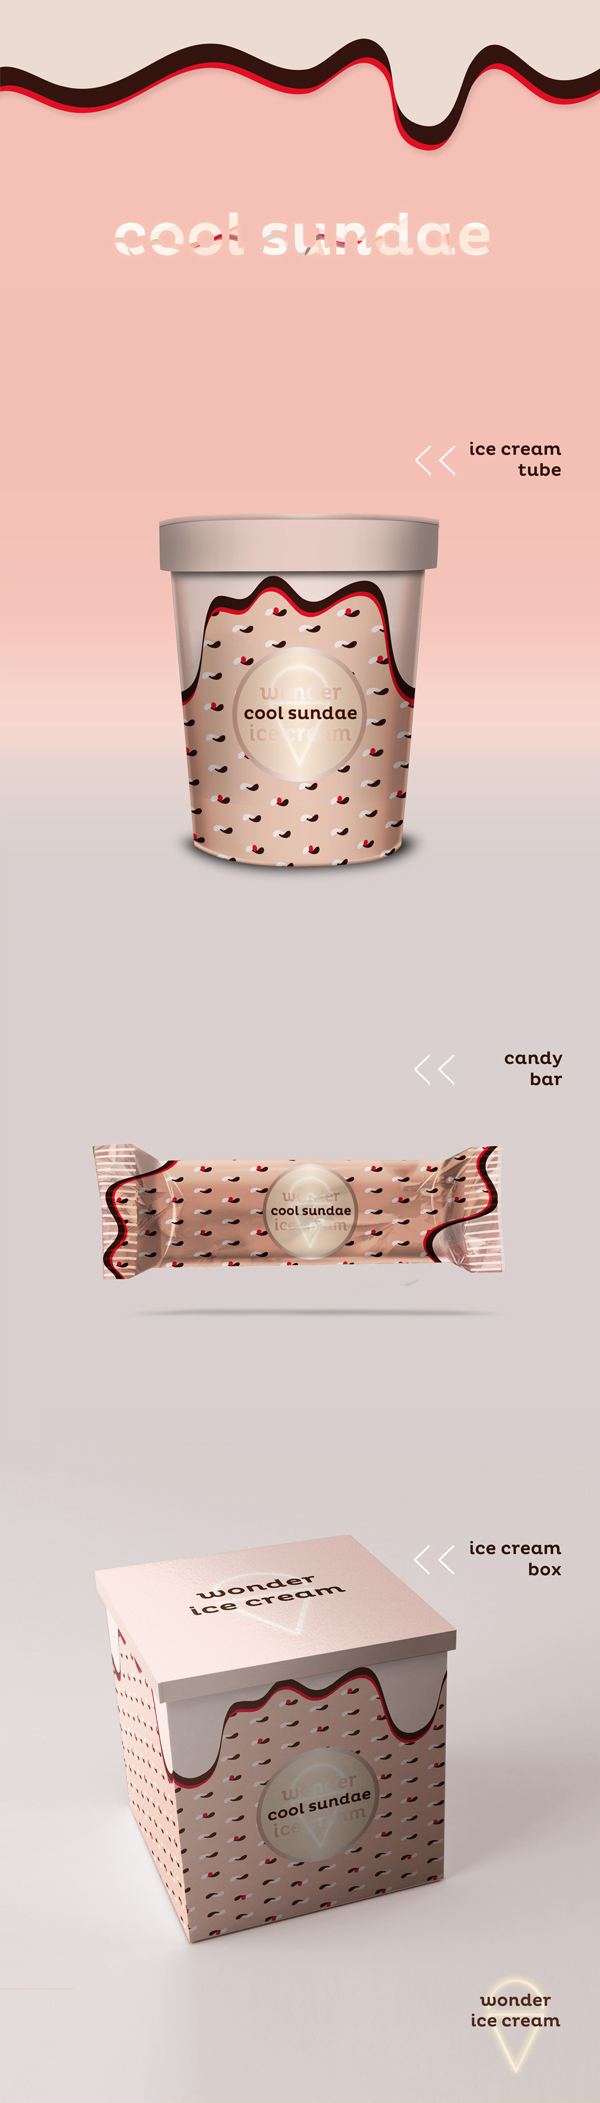 Ice-cream_sundae_packaging